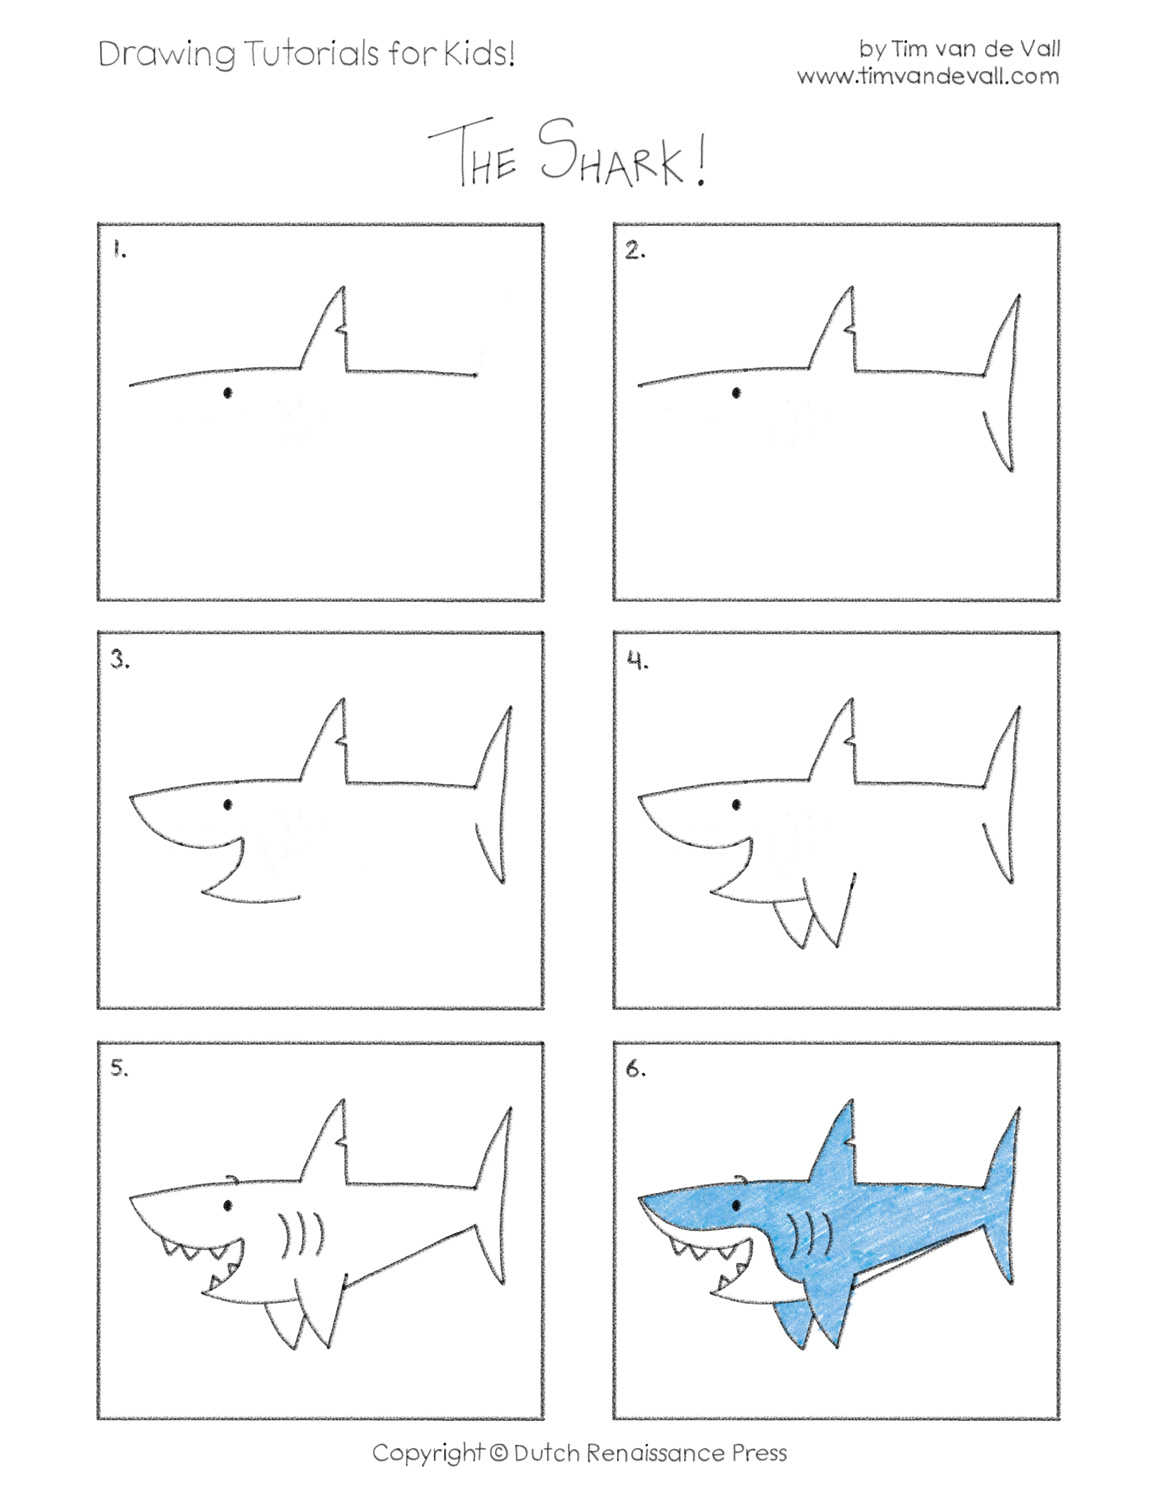 Easy Drawing Tutorials for Kids | Printable Drawing Lessons